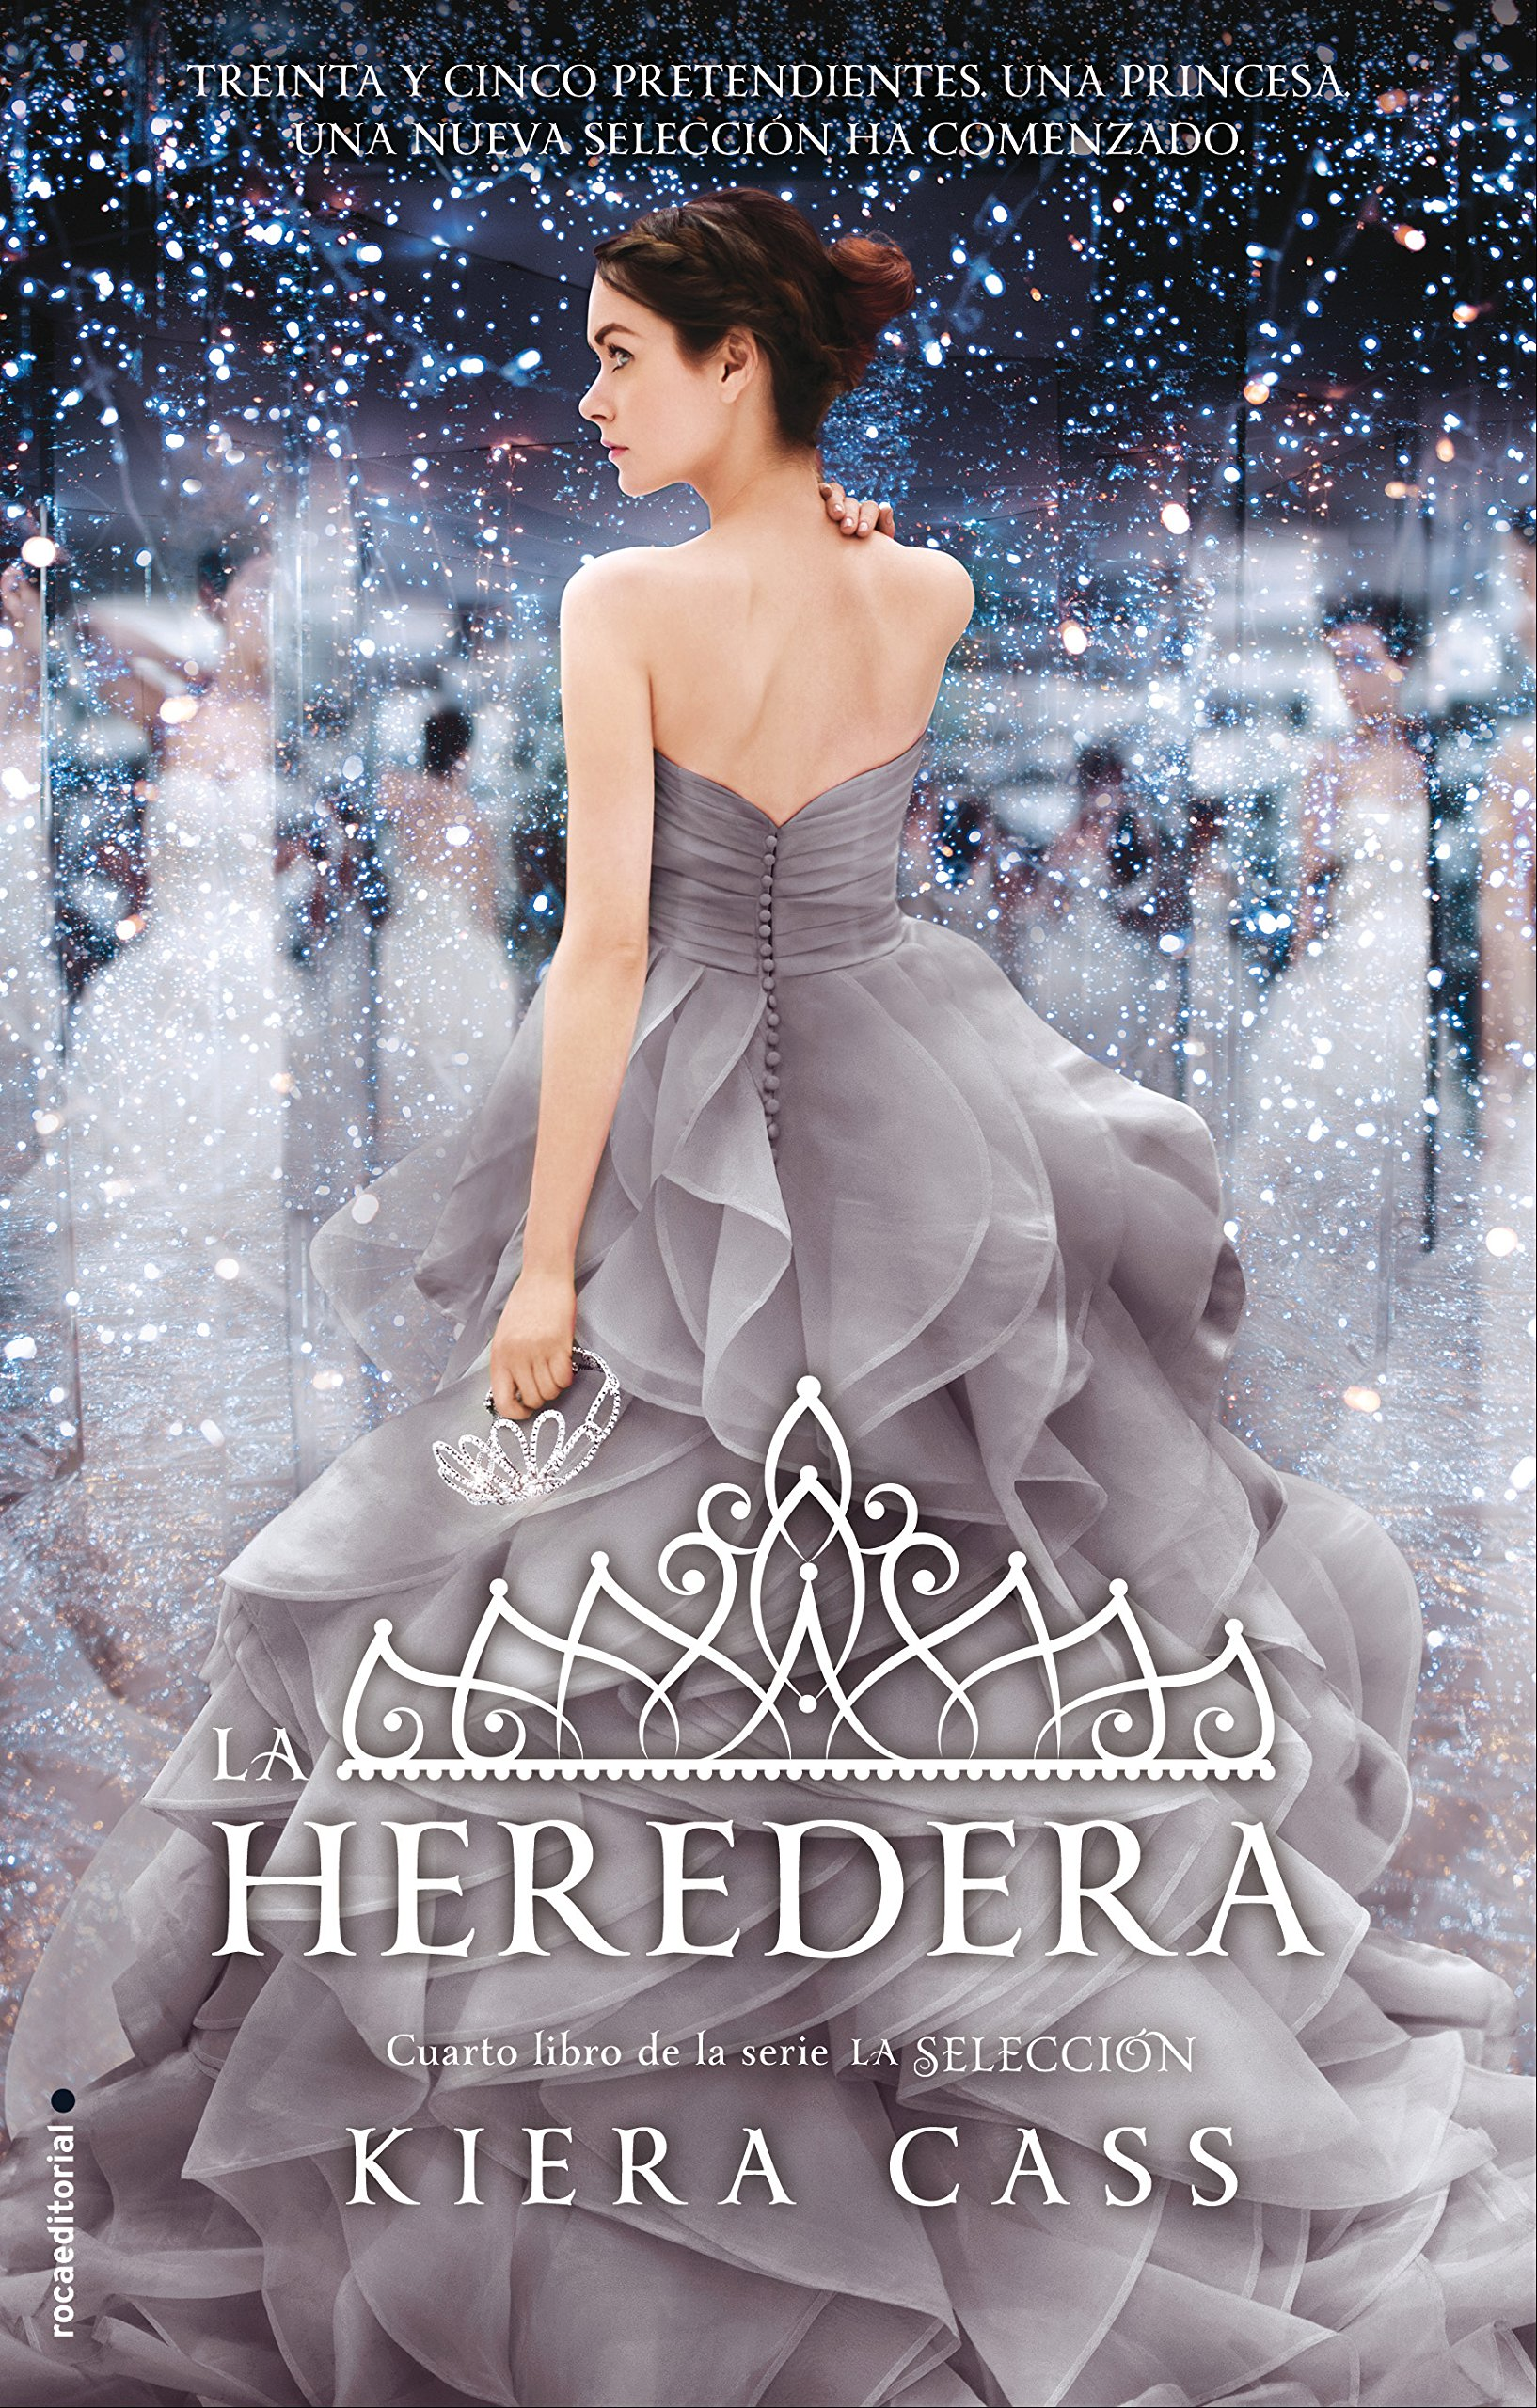 La heredera (La Seleccion / the Selection) (Spanish Edition): Kiera Cass: 9788499189949: Amazon.com: Books